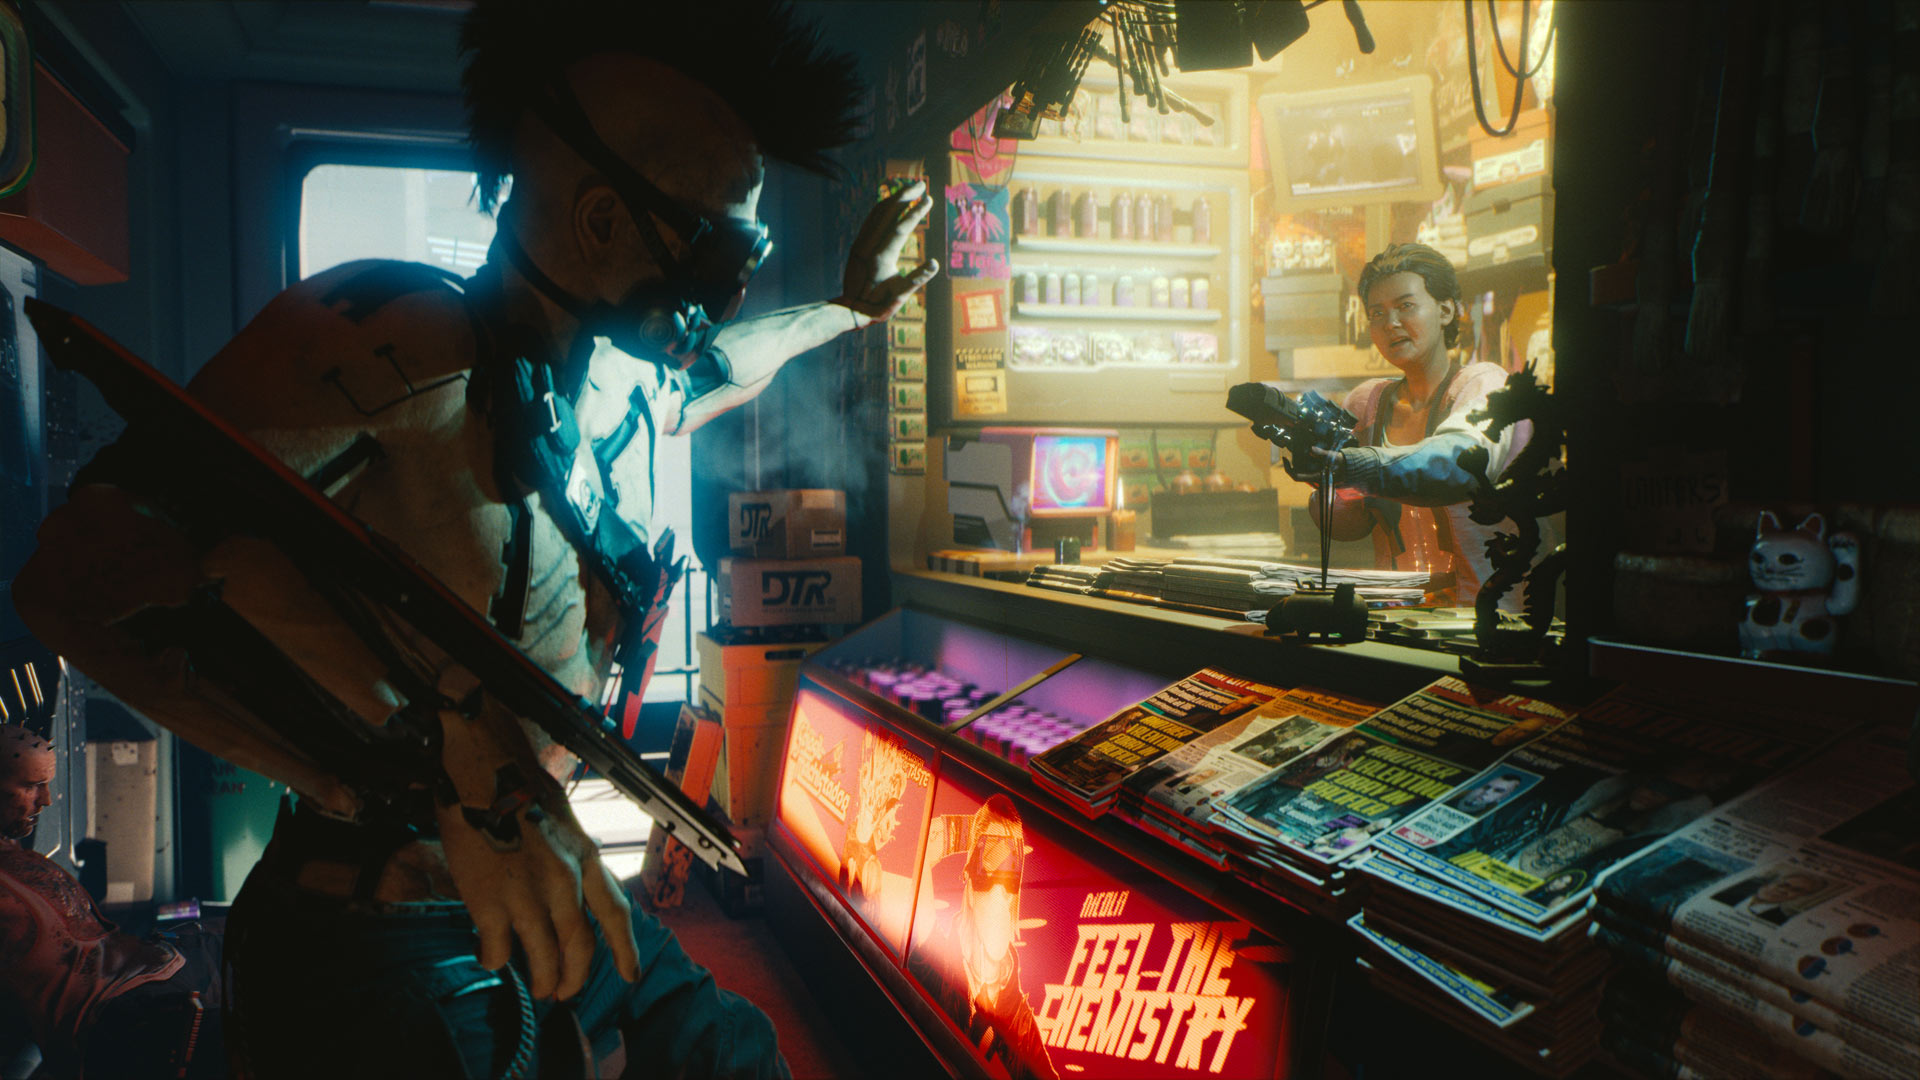 Why are modders restoring the look and feel of Cyberpunk 2018? - VG247